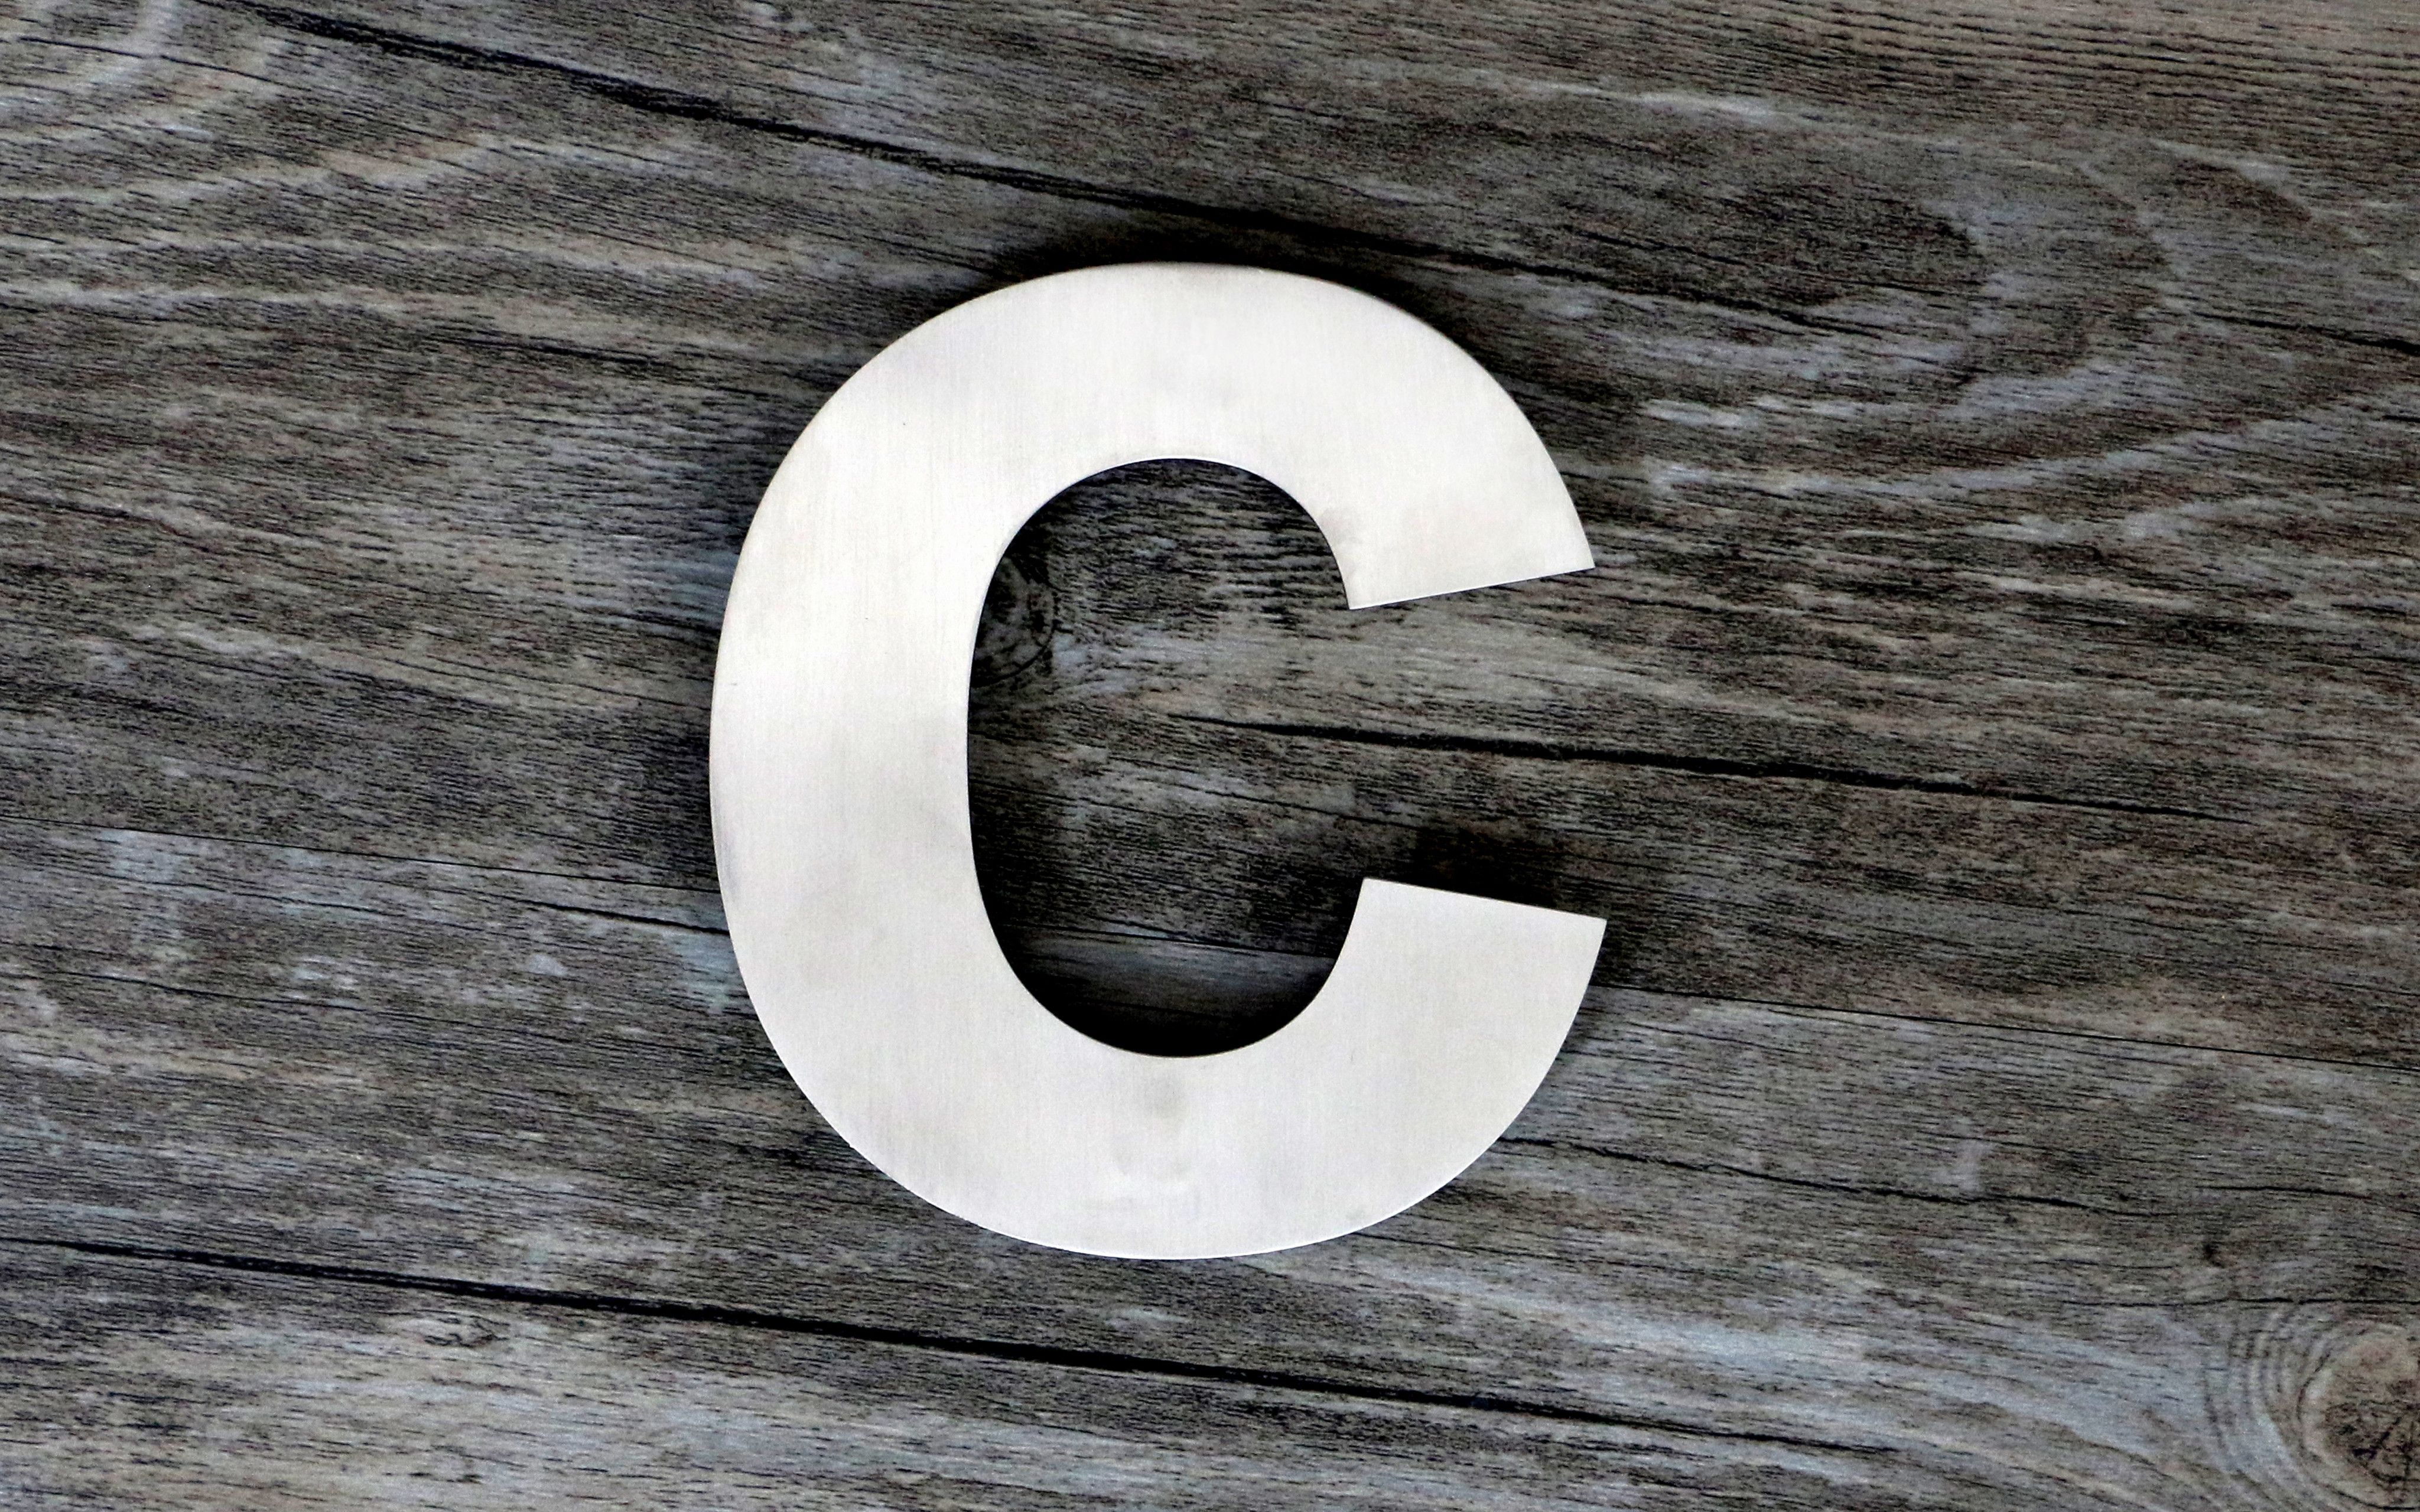 Modern floating steel house letter super large 9 inch letter c brushed solid 304 stainless steel floating appearance easy to install